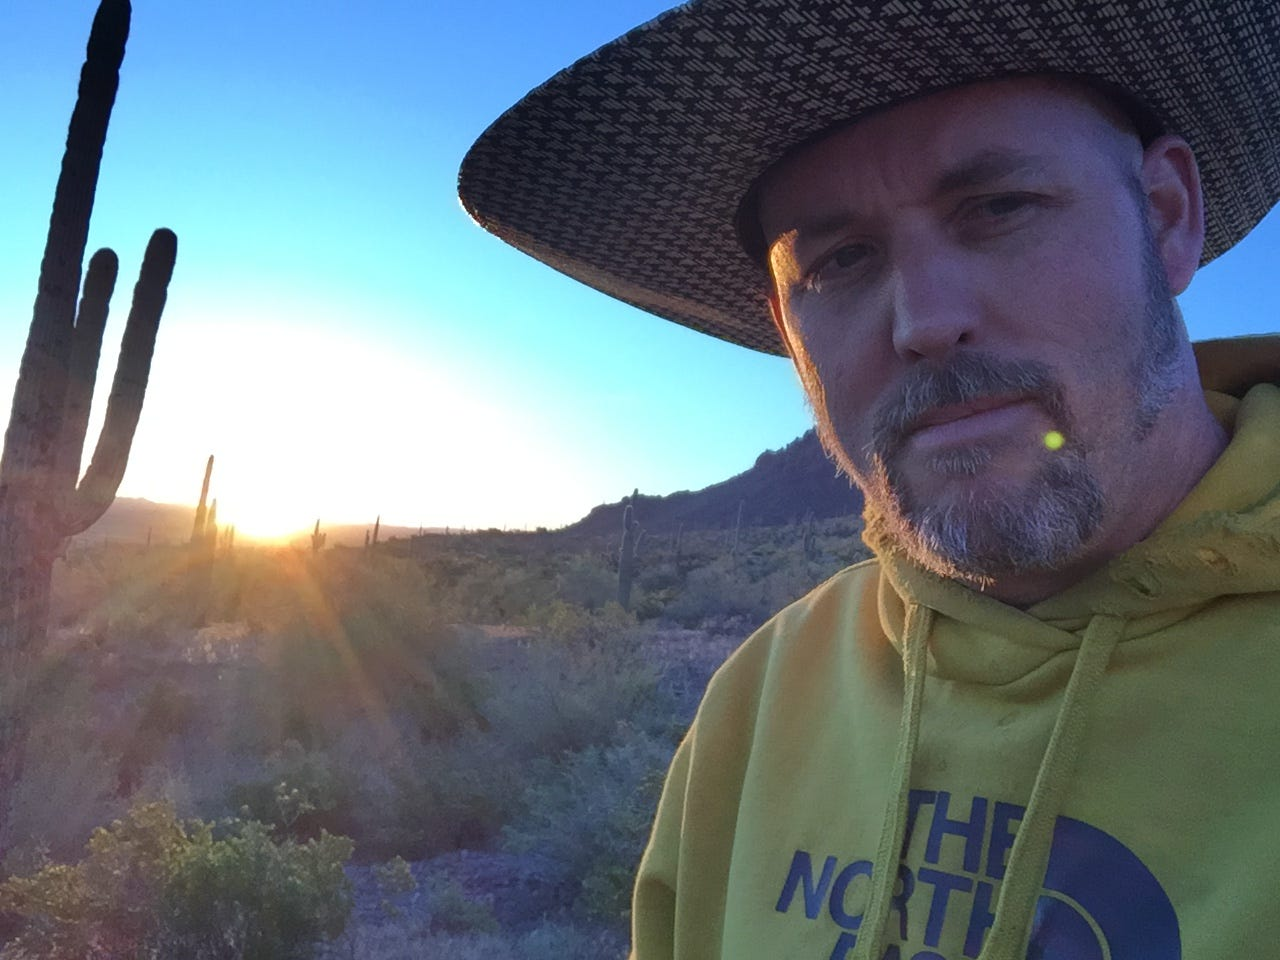 Halverson somewhere in the Utah desert in early 2016 just a few months before he became so despondent he attempted suicide.